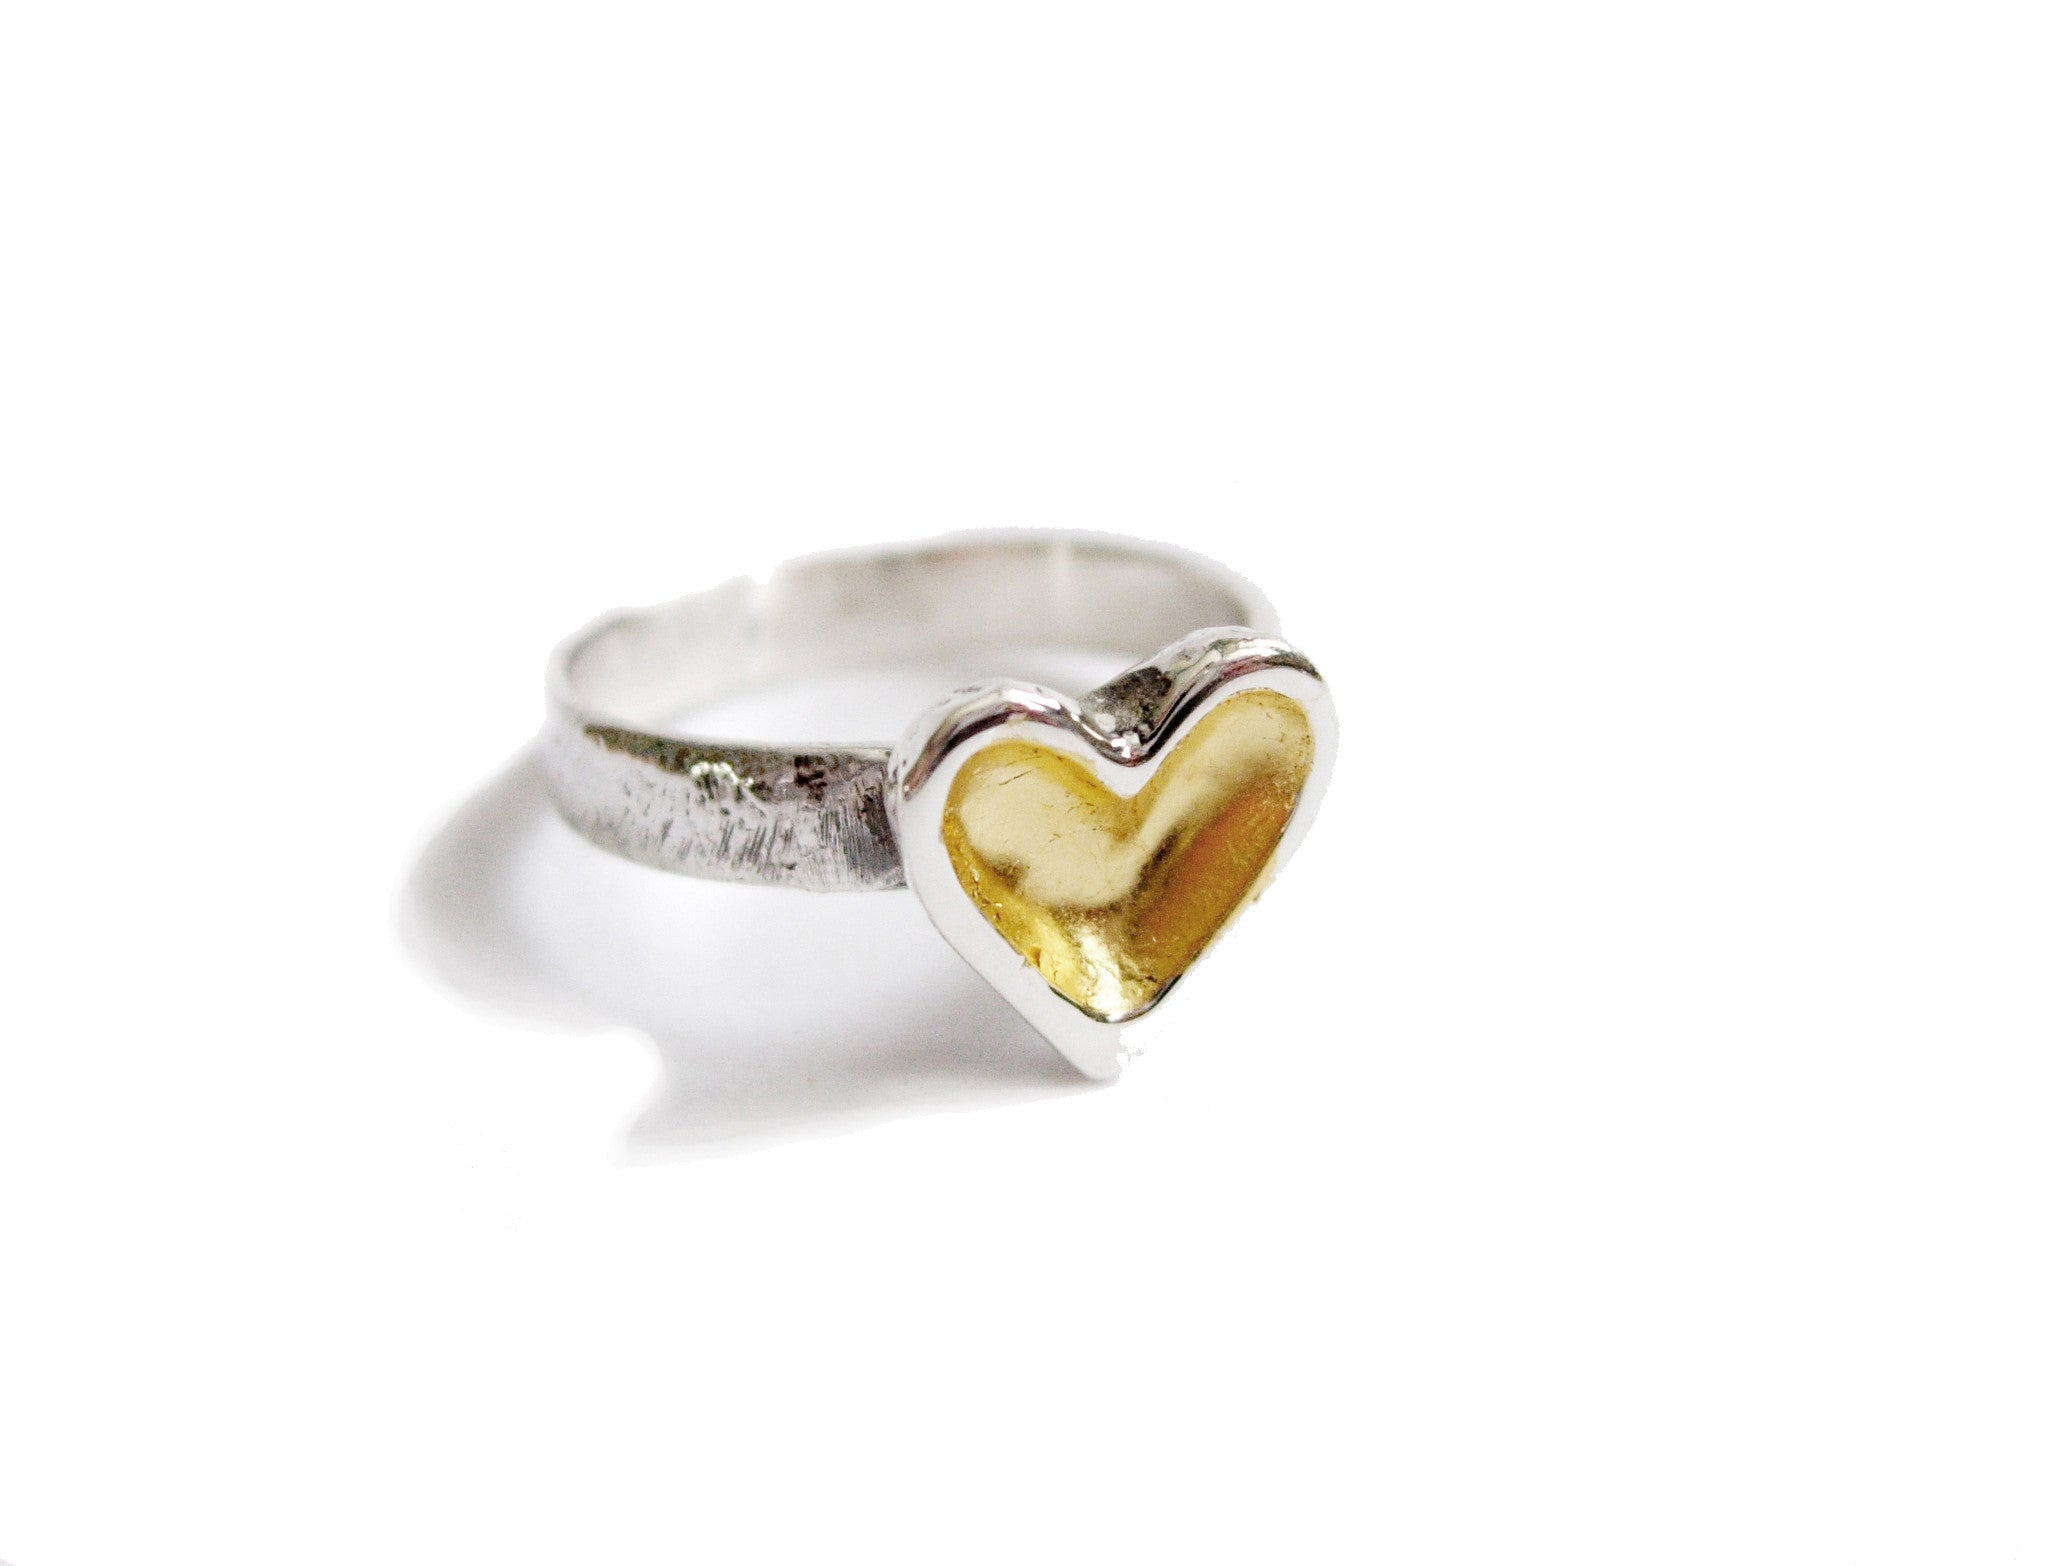 A beautiful gold leafed heart ring in sterling silver to add some loving glow to your hand.